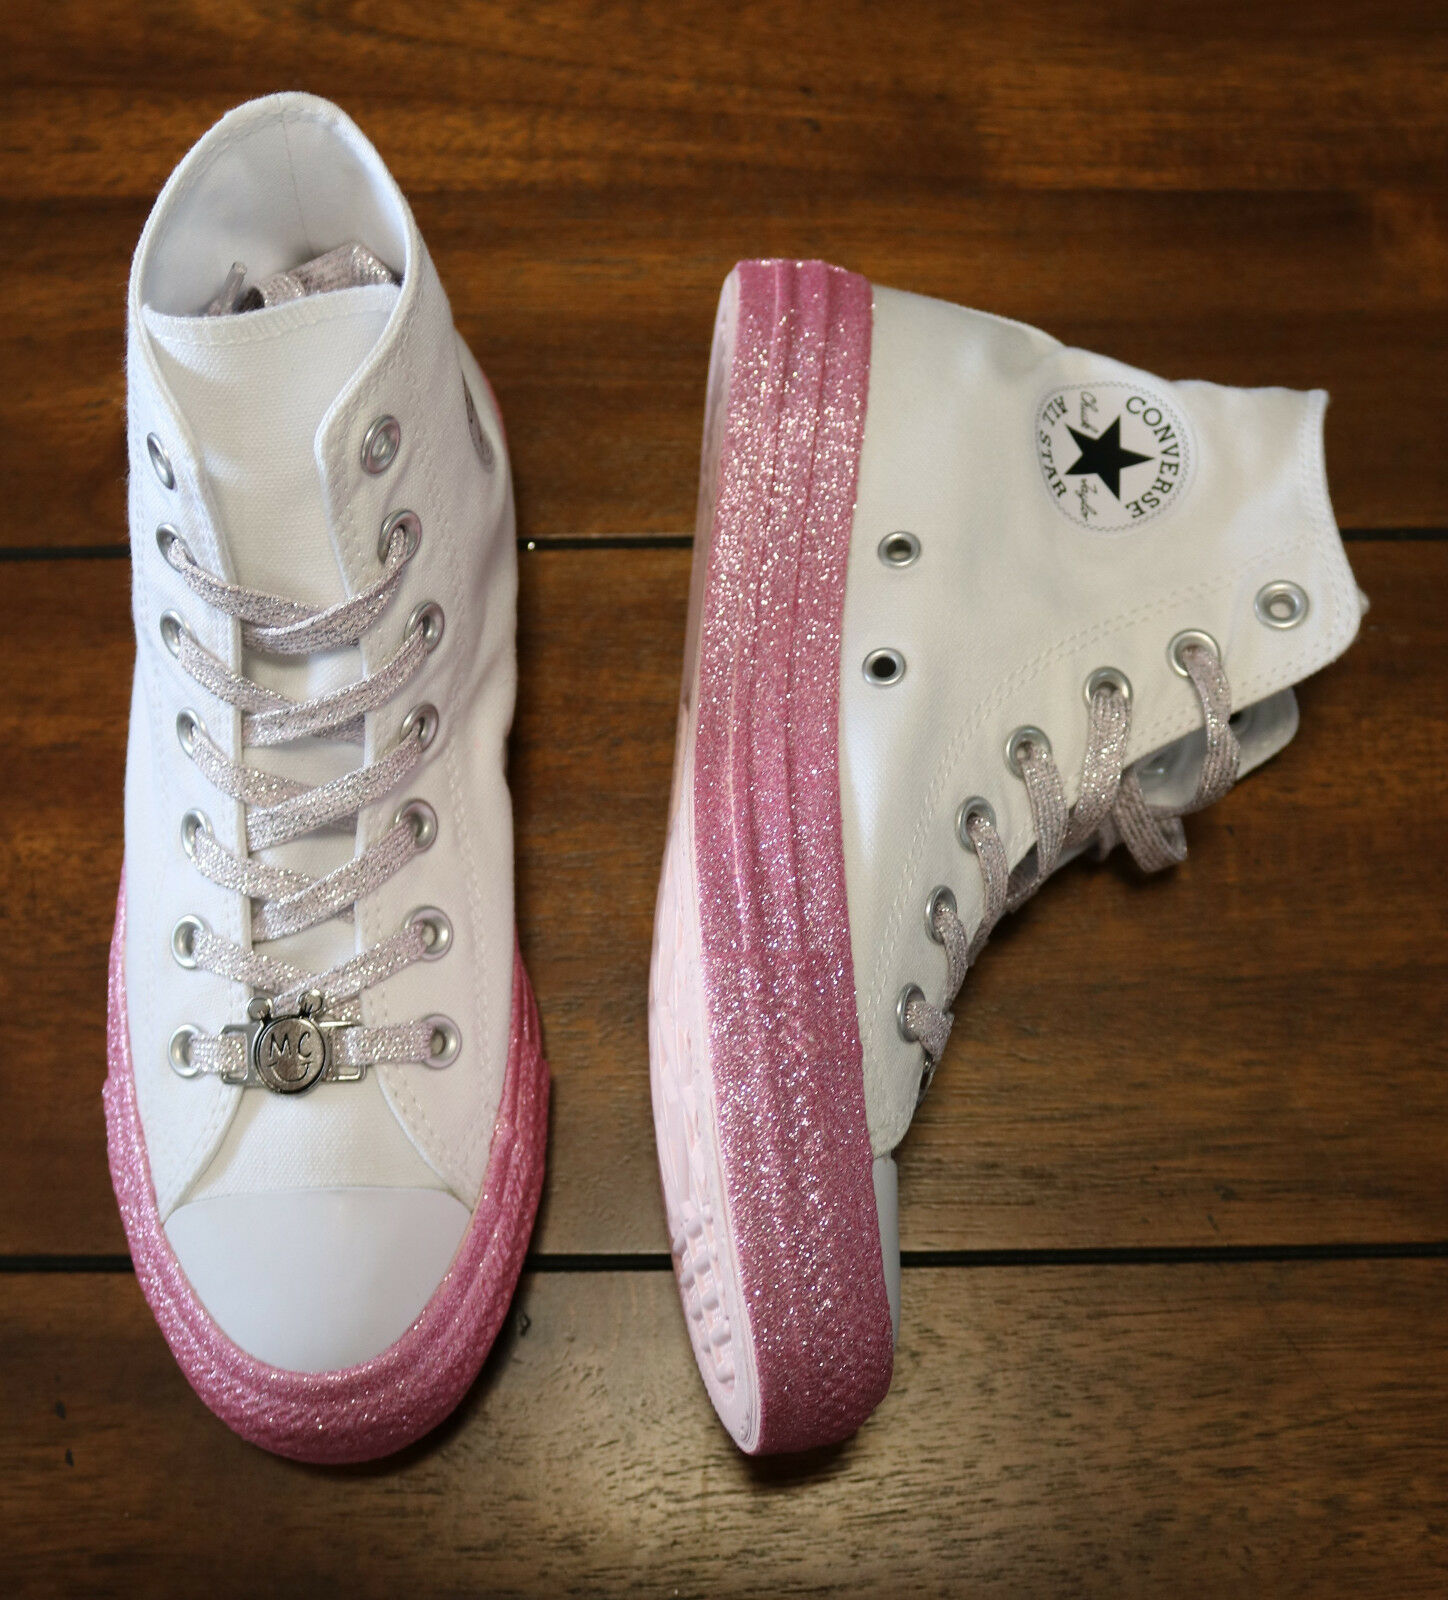 d8ced20fcbc8 Womens Converse x Miley Cyrus Chuck Taylor All Star Glitter High Top  White Pink